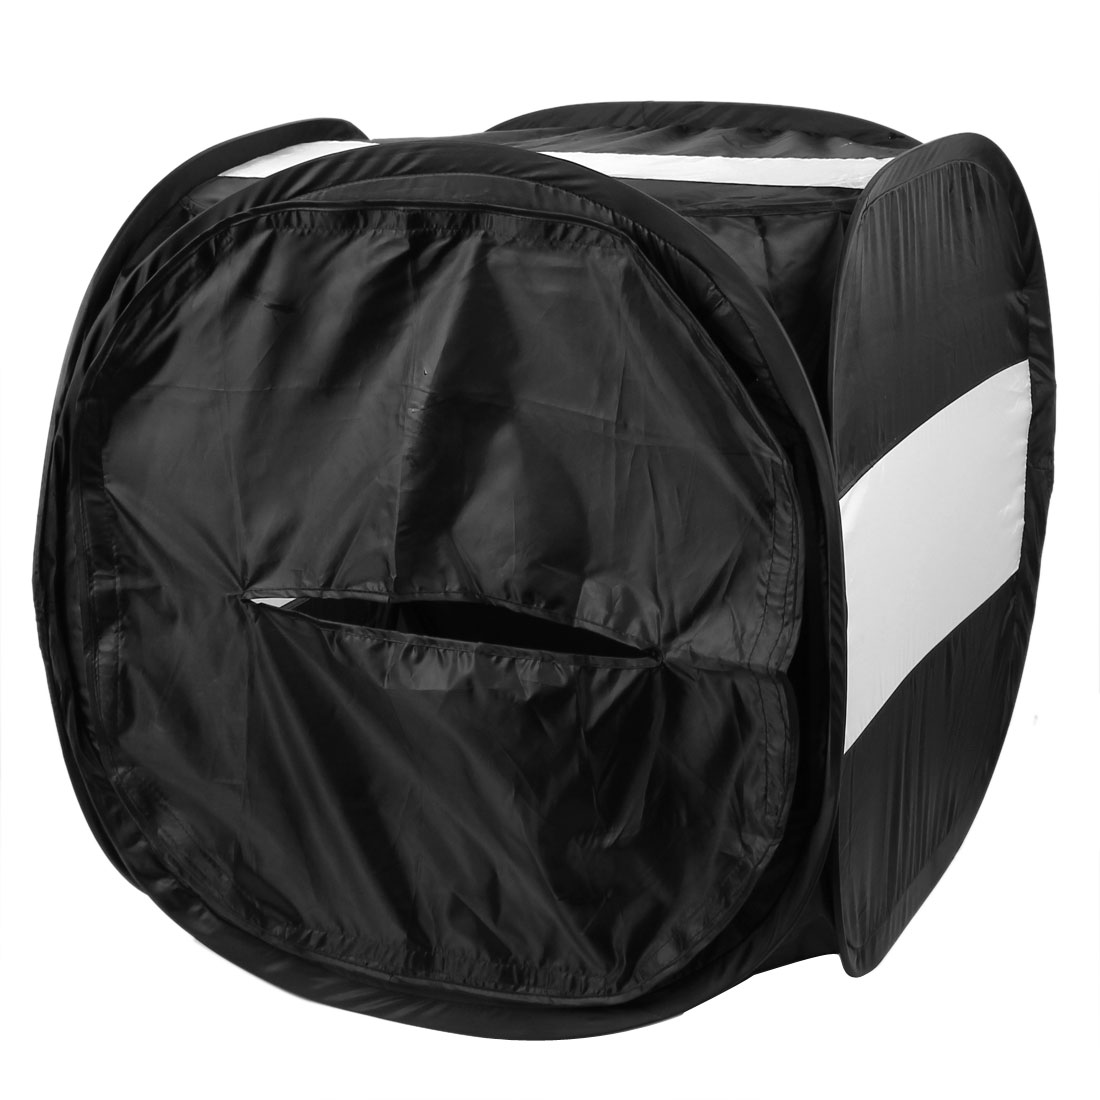 "22"" Photography Studio Shooting Tent Light Softbox Diffuser Soft Box"